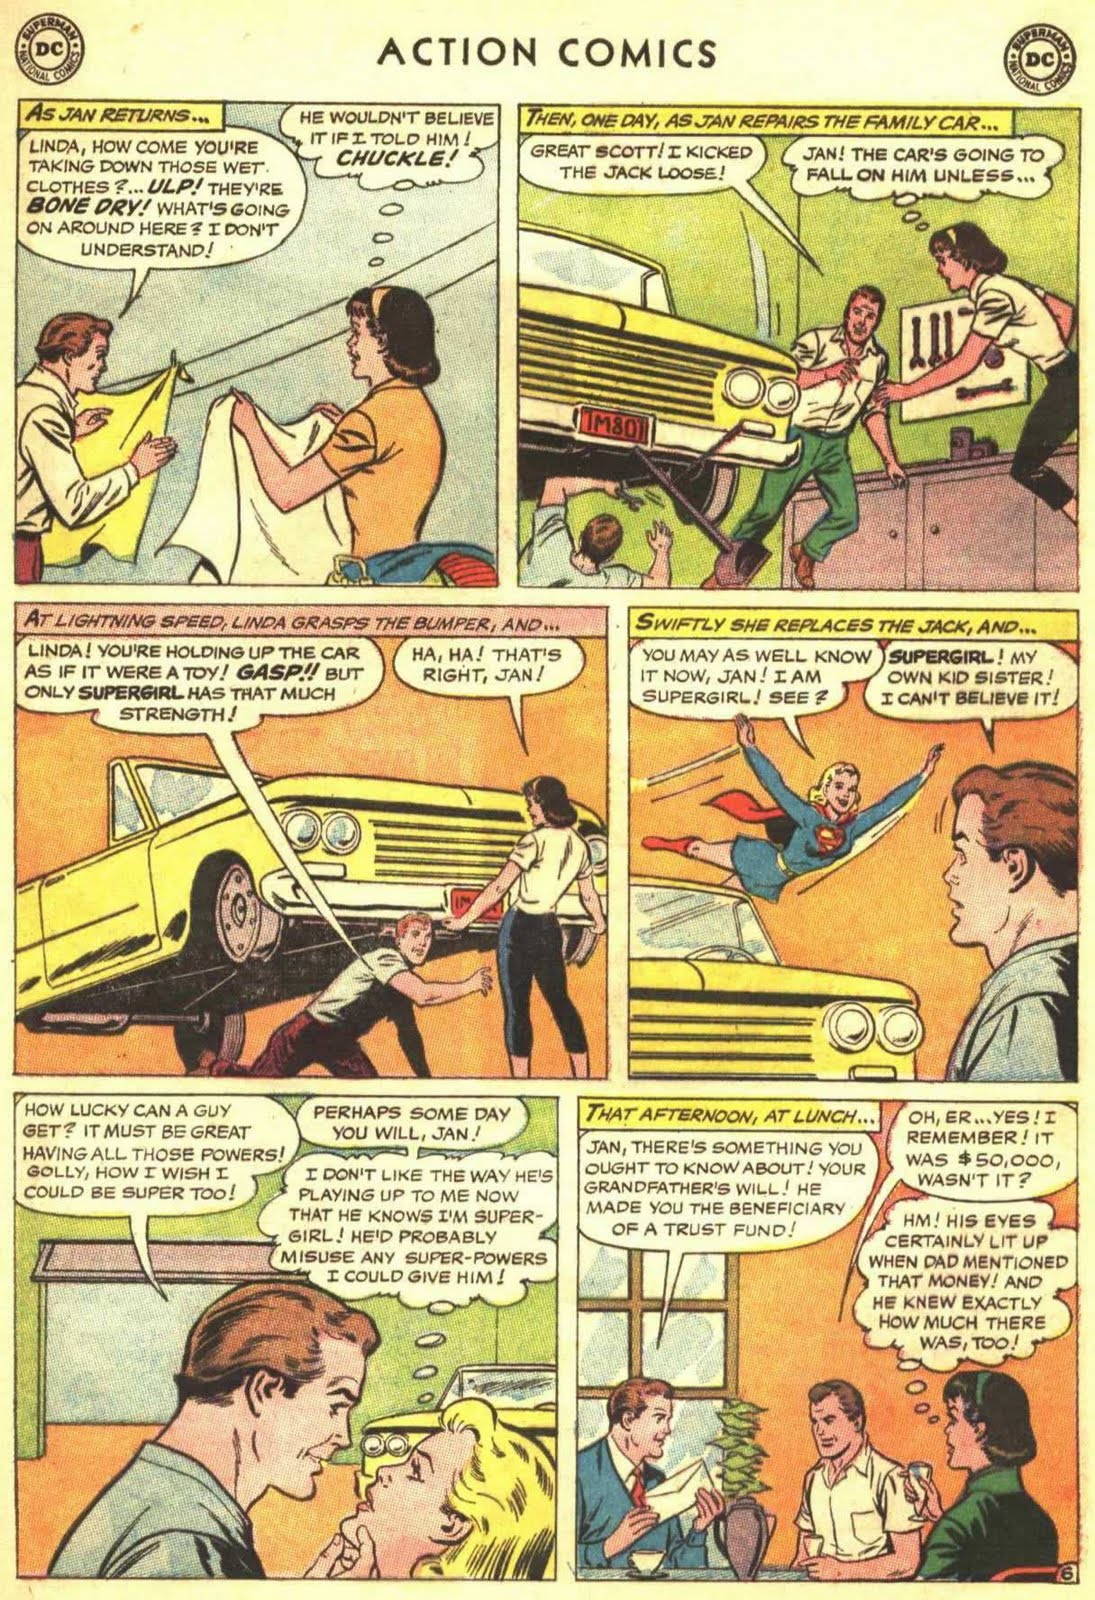 The guy made a comic sentence on April 1, and the girl cruelly avenged him